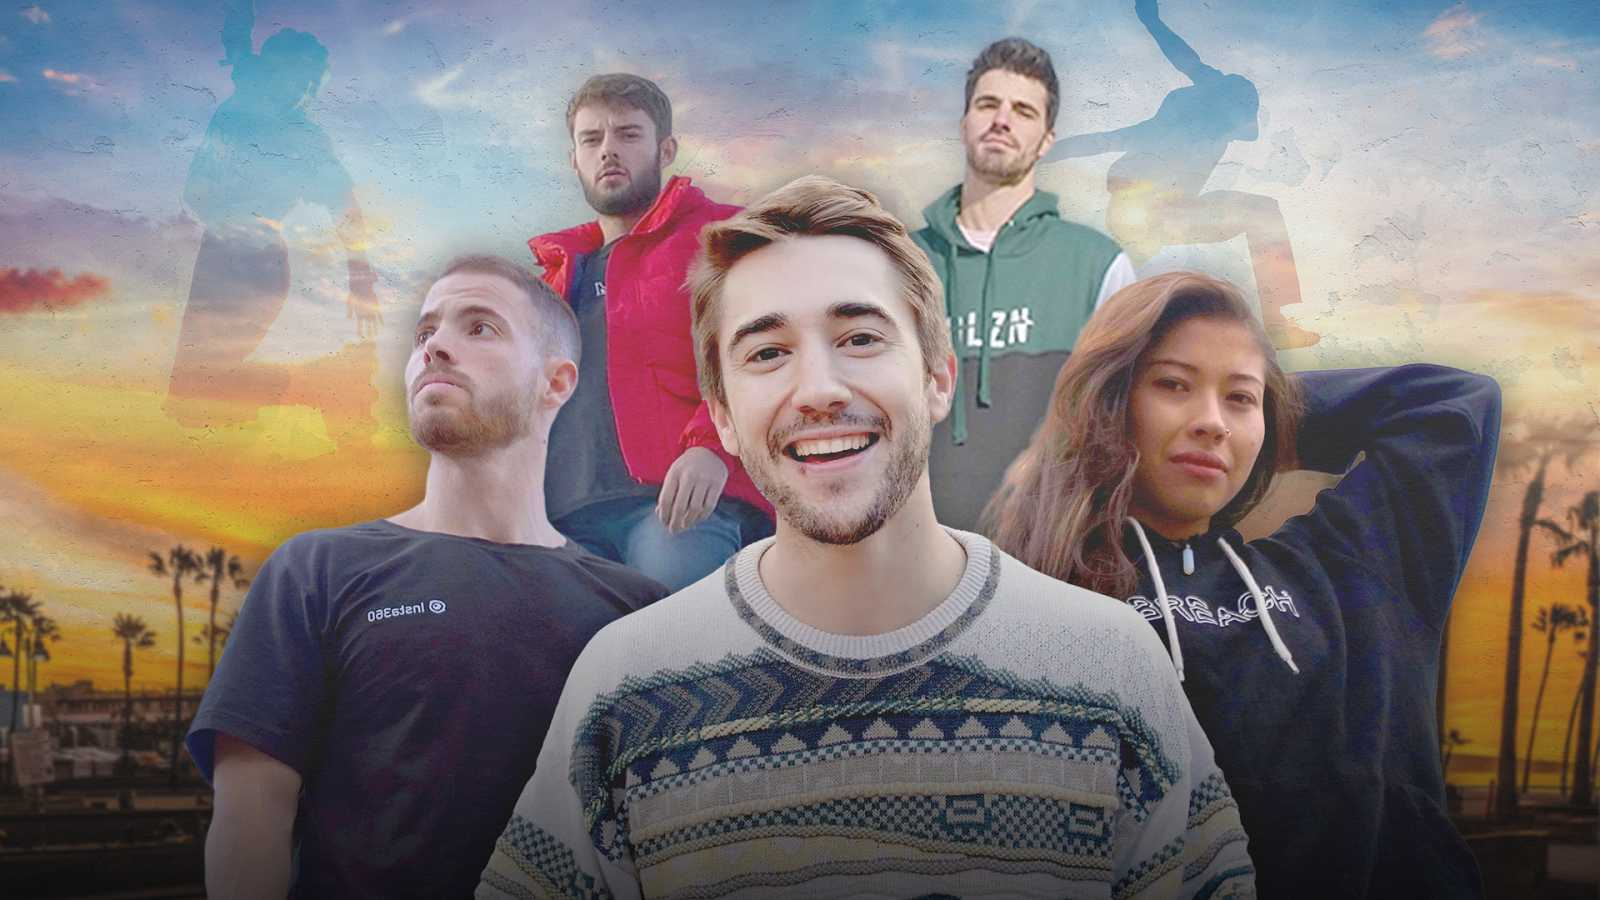 Héroes, el documental sobre parkour